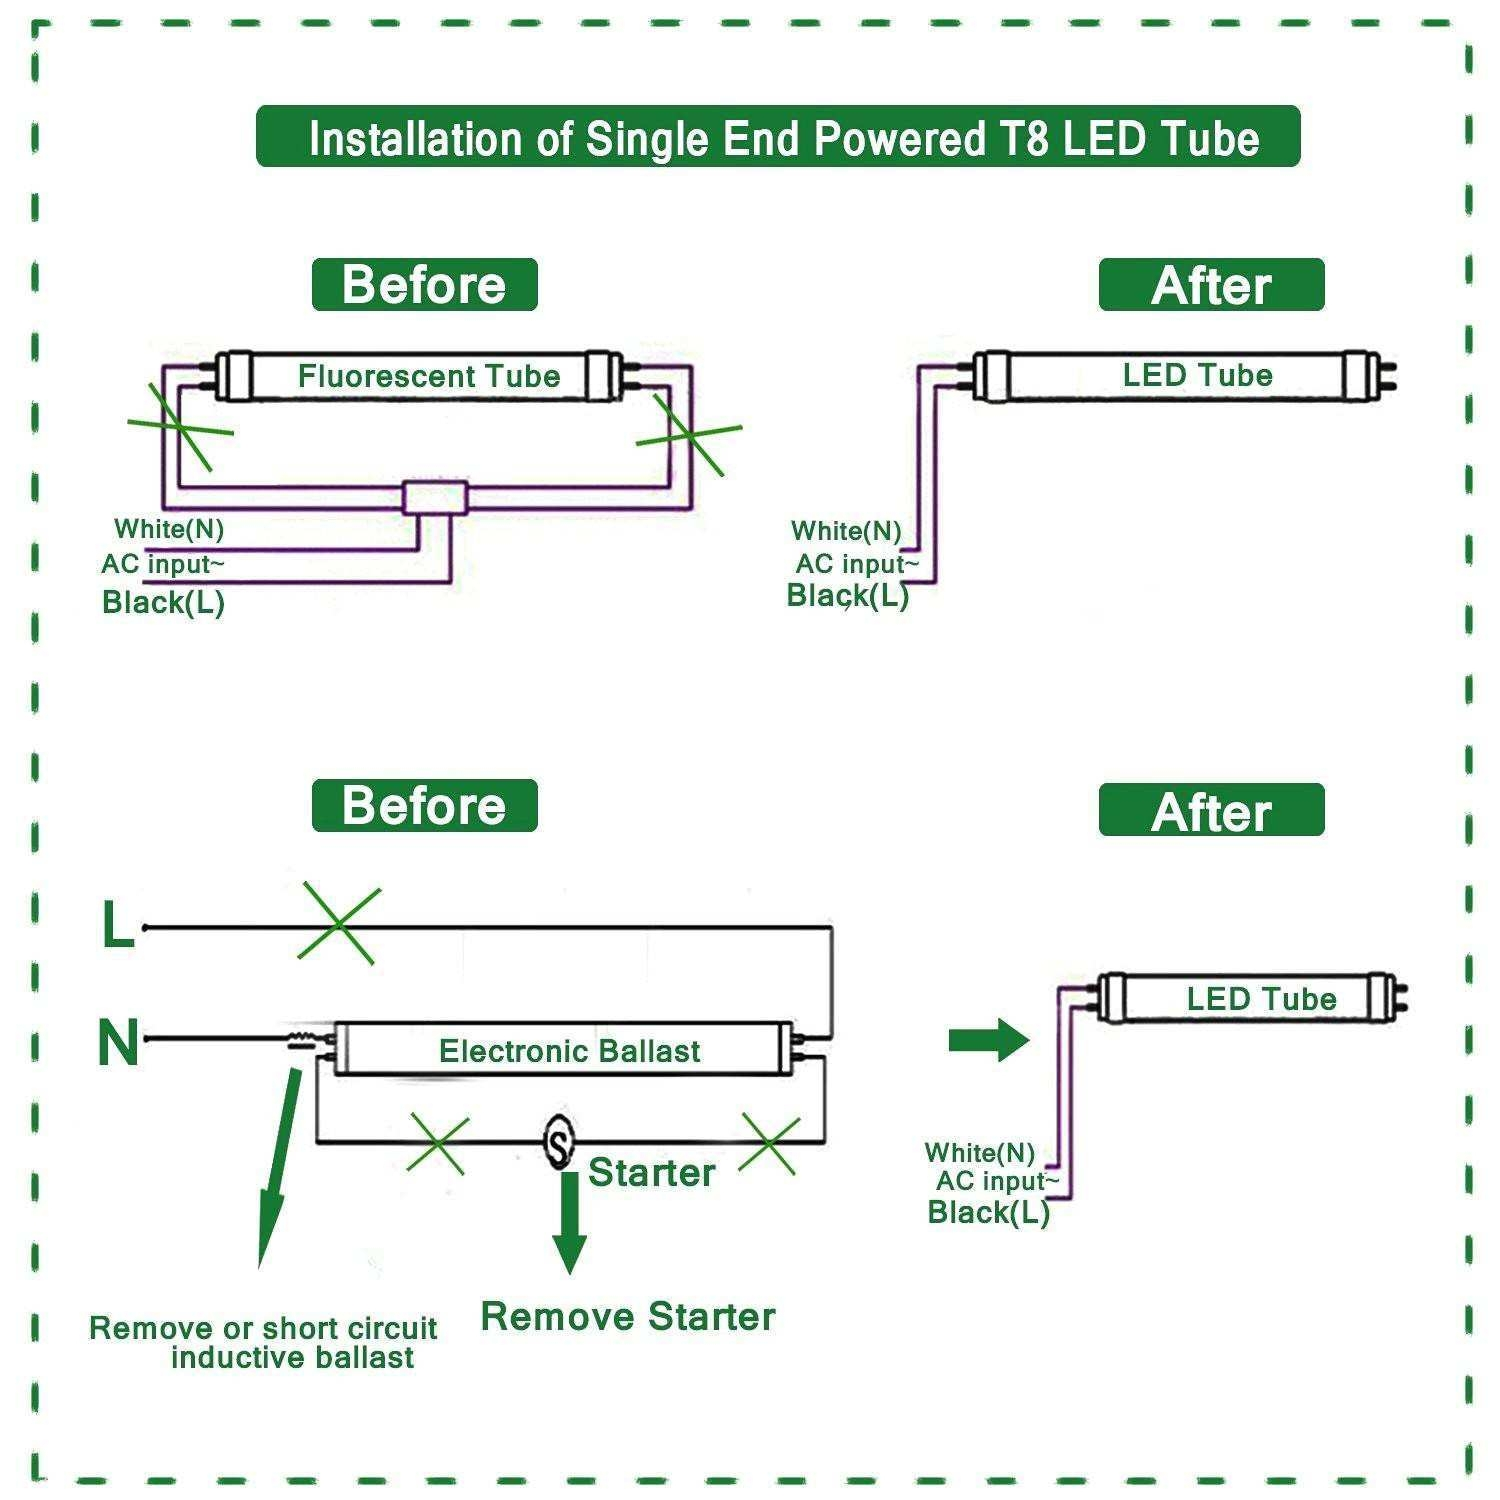 convert t12 to t8 wiring diagram Collection-convert t12 to t8 wiring diagram Collection Led T8 Wiring Diagram T8 T12 LED Tubes 10-r